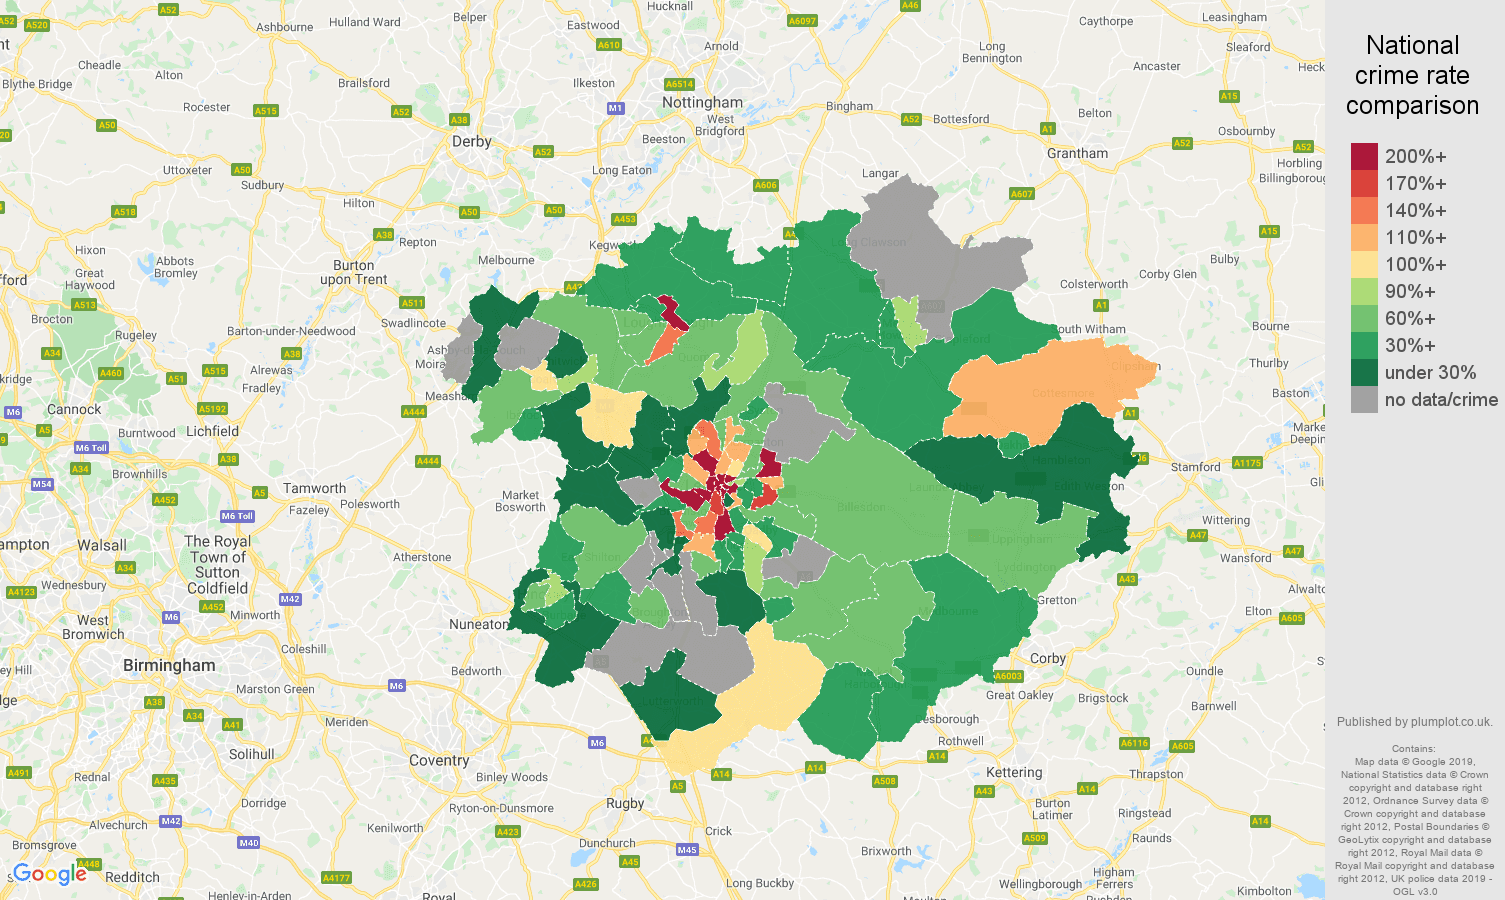 Leicester possession of weapons crime rate comparison map